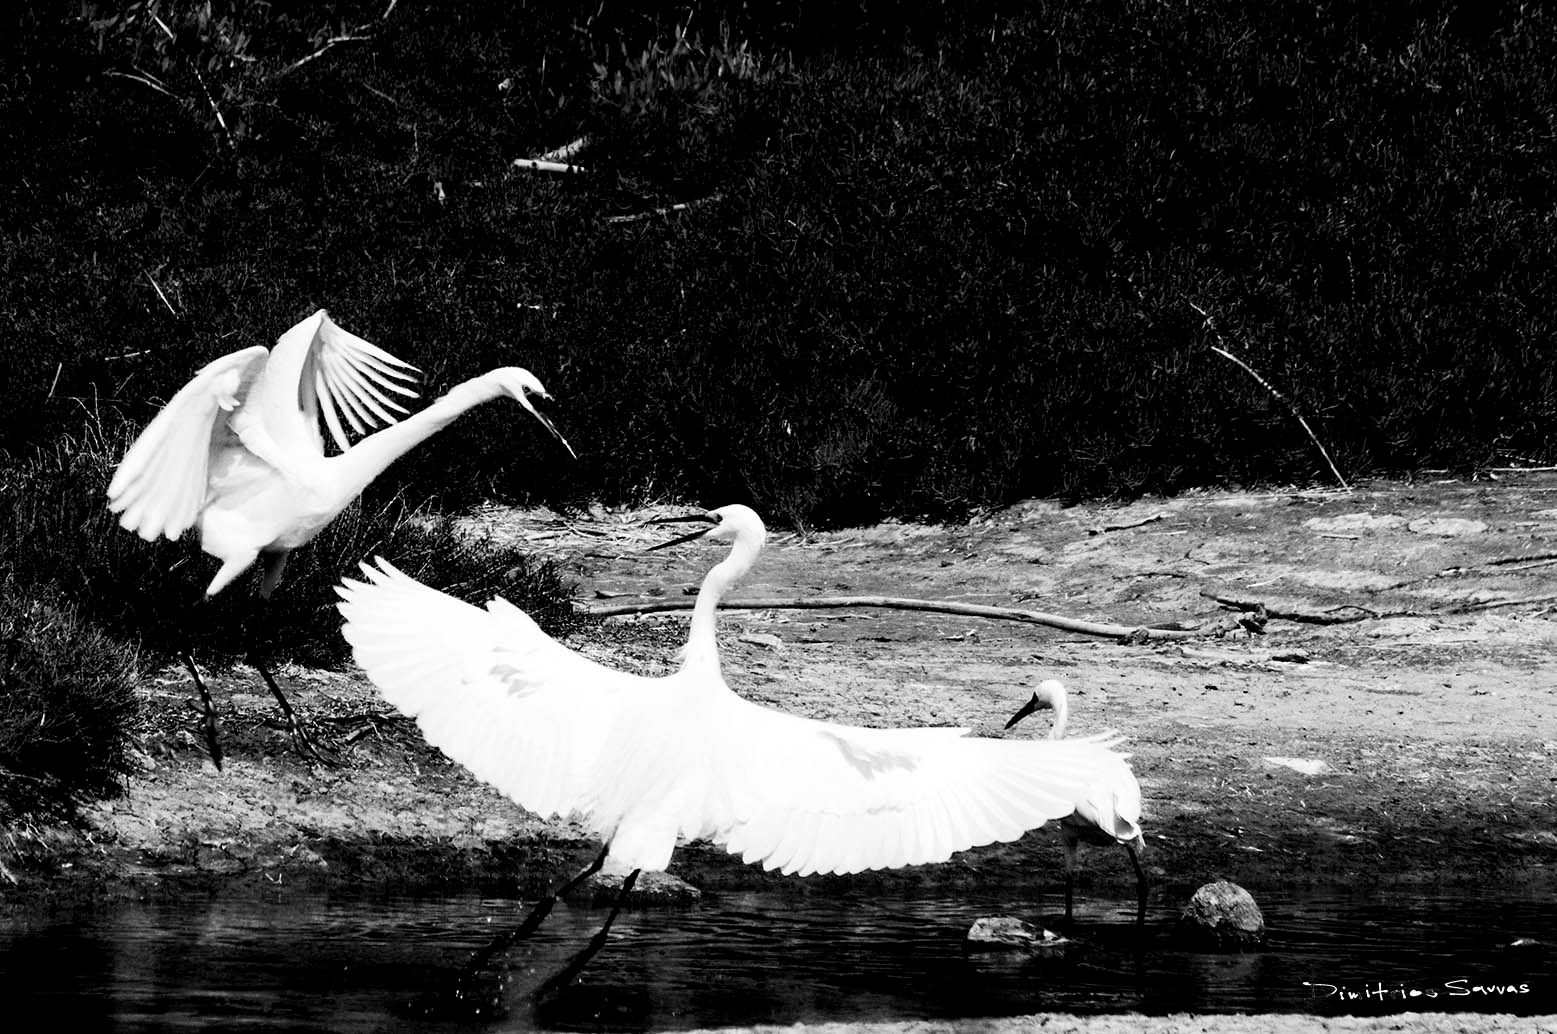 the fight of the egrets  by dimitrissavvas